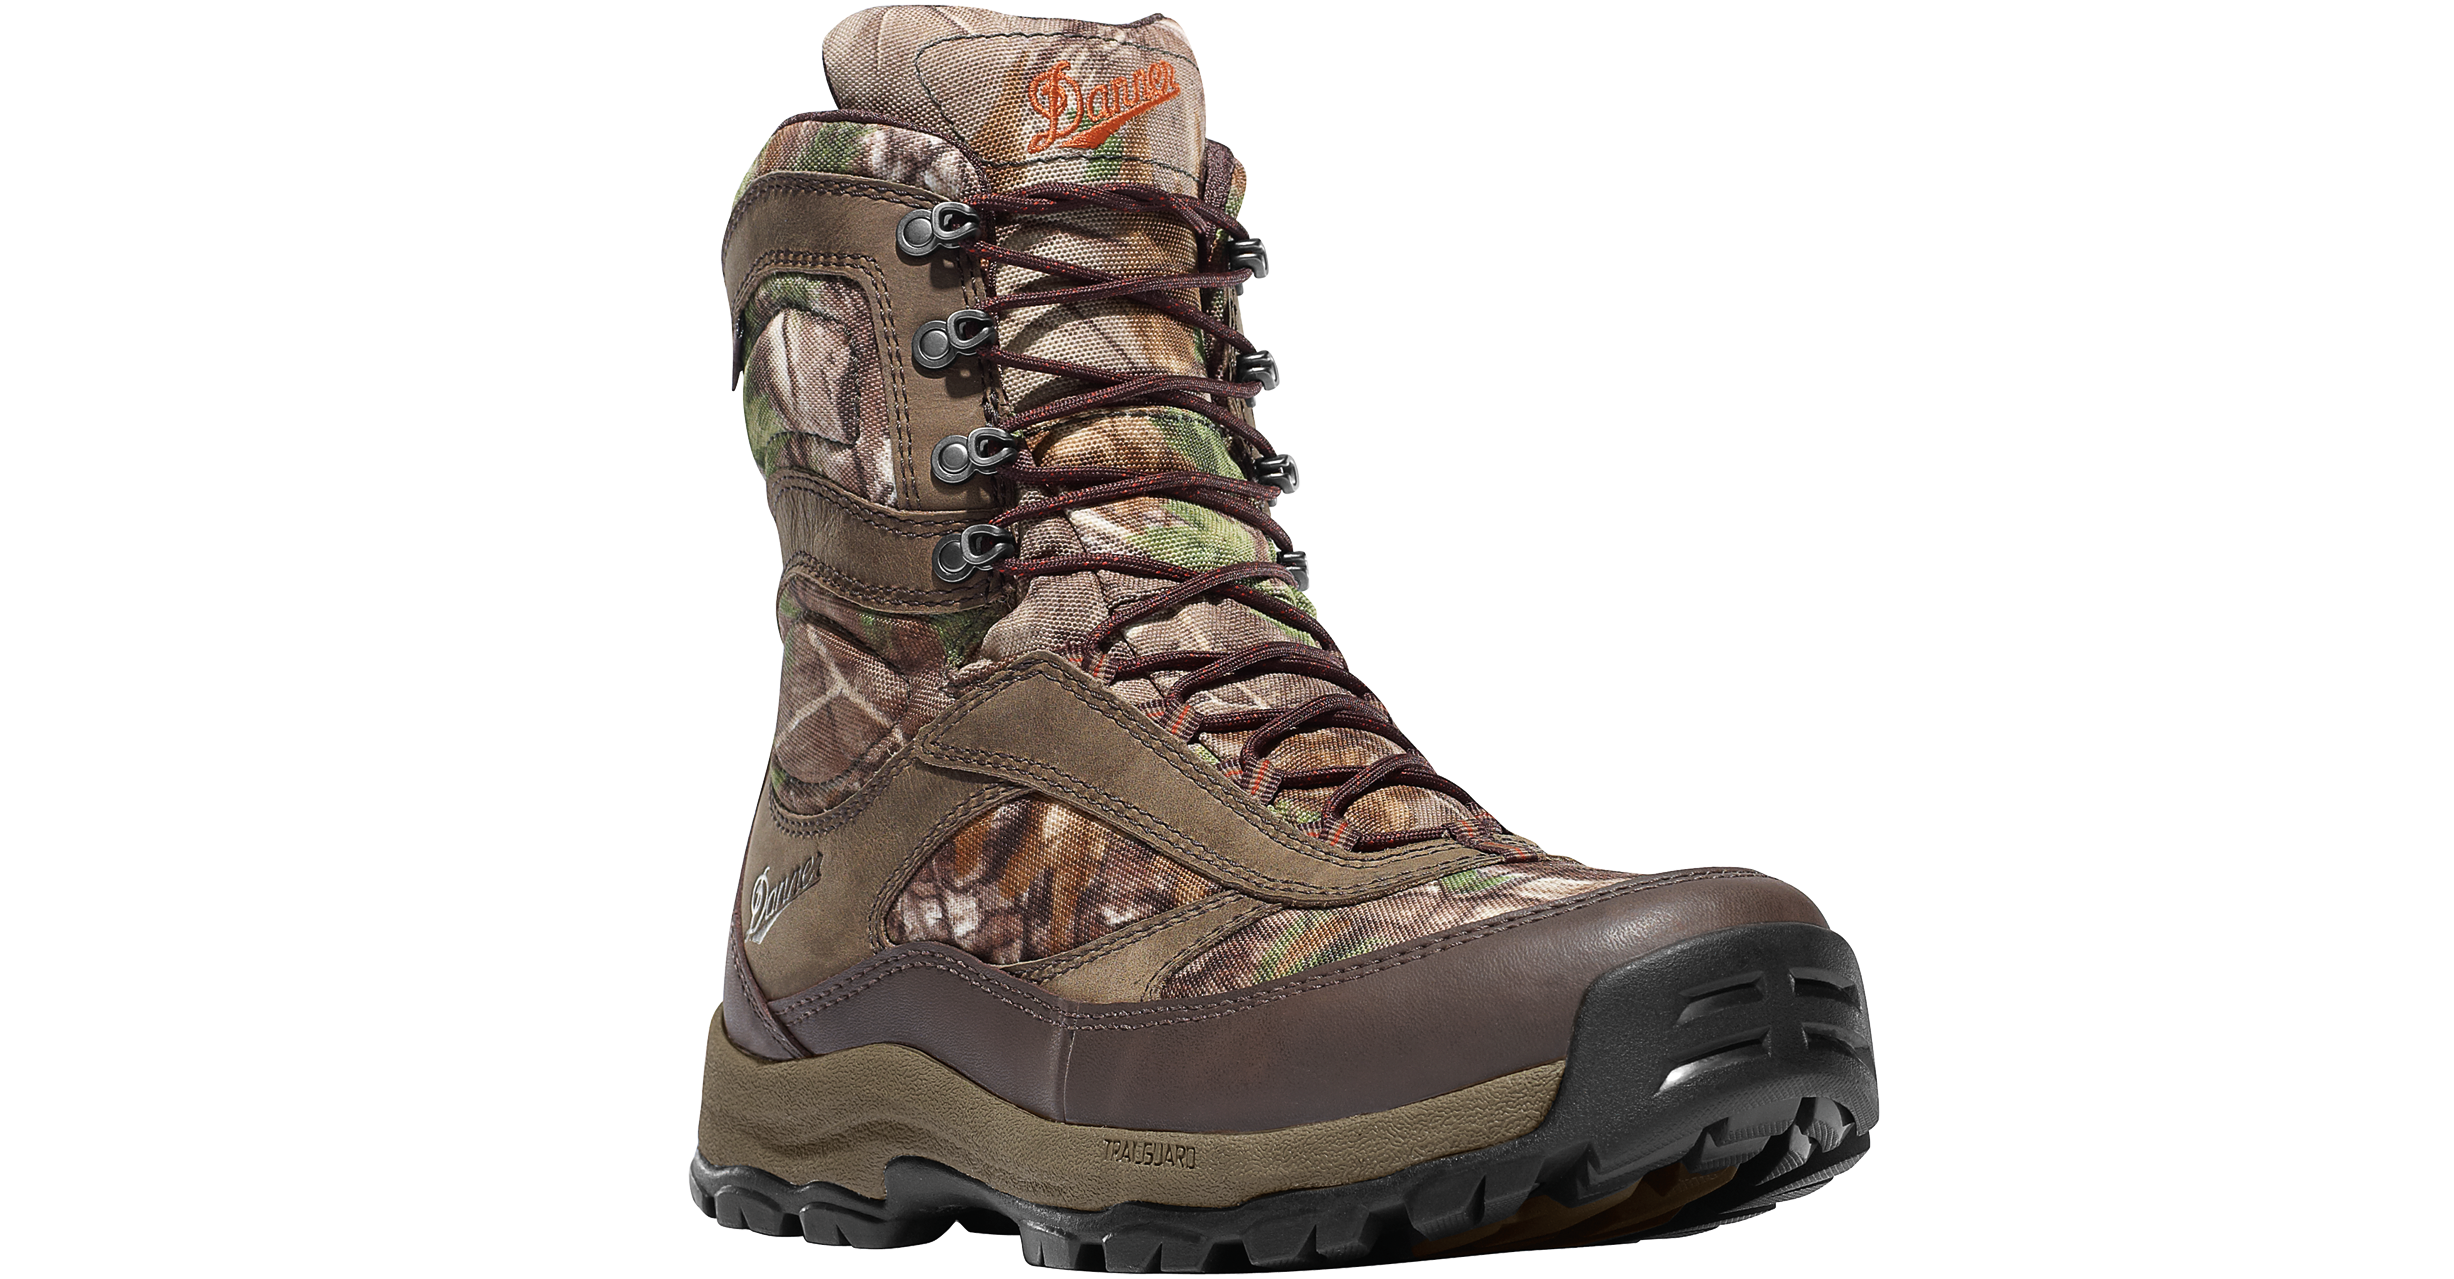 Danner's High Ground: Is This the Best Hunting Boot Ever Made?